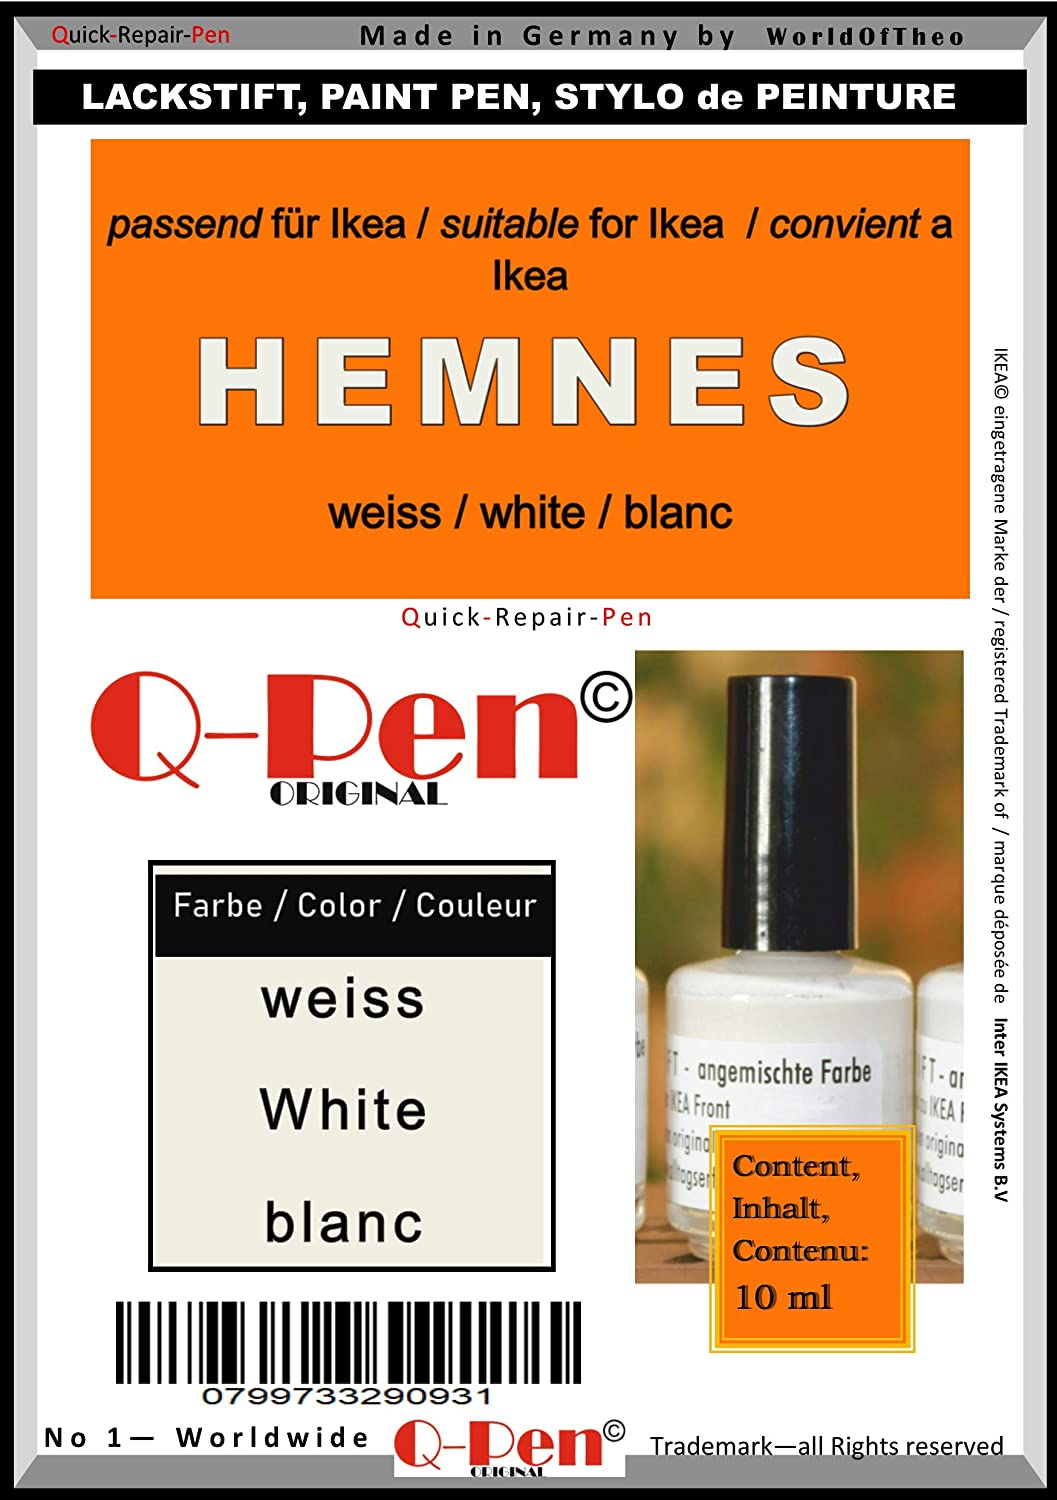 Q-Pen Original Touch-Up Paint for White Direct sale Popularity of manufacturer HEMNES Blanc IKEA weiÃ